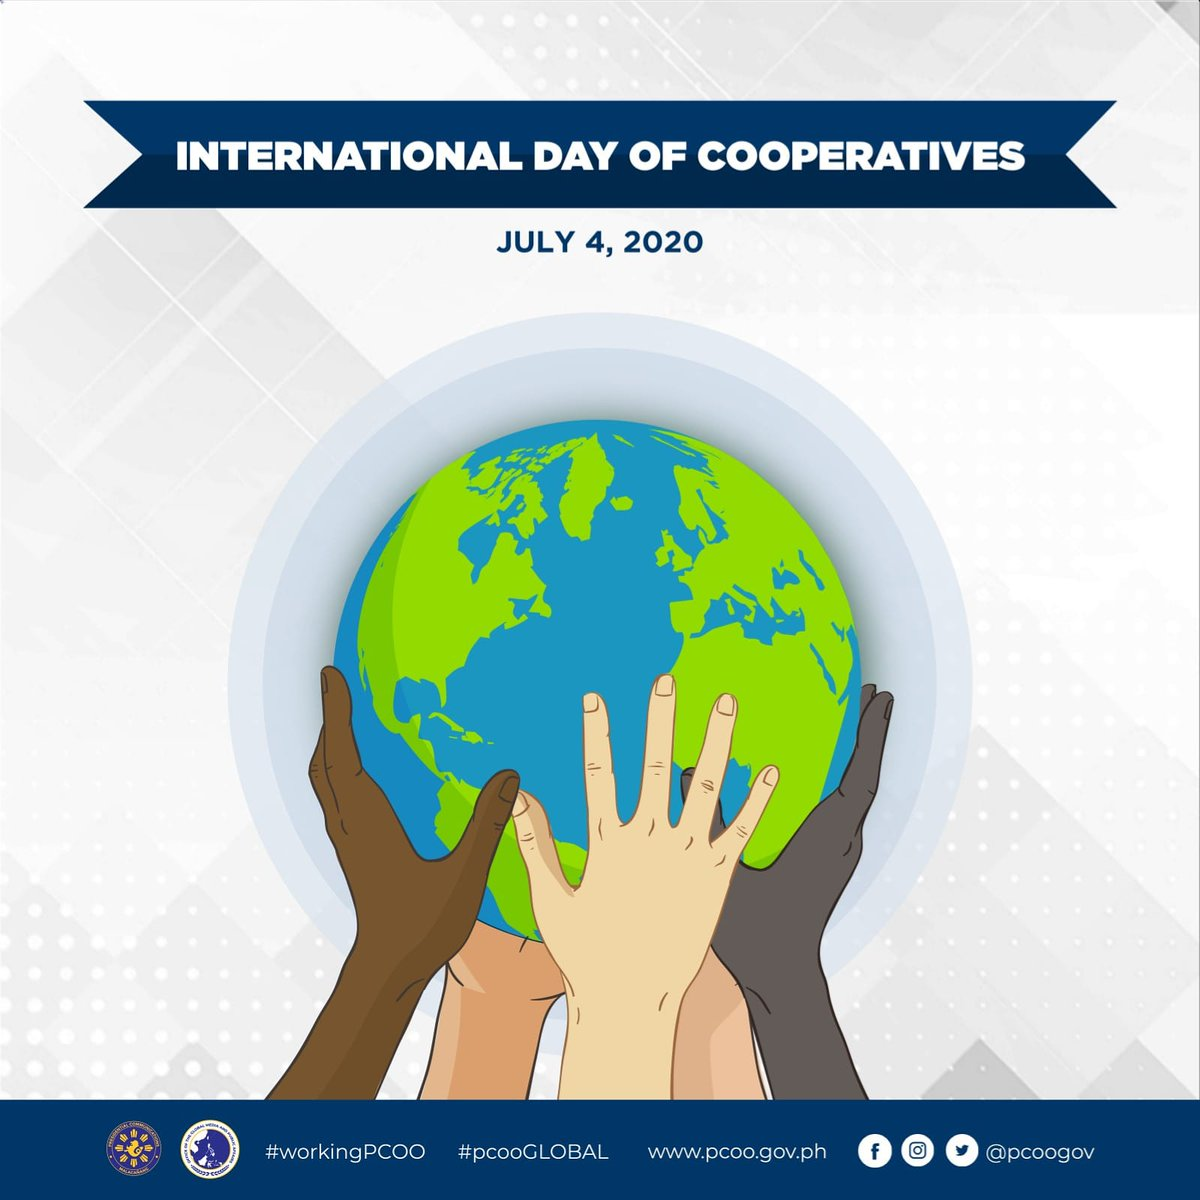 Today, we celebrate the International Day of Cooperatives, with the theme of Cooperatives for Climate Action to raise awareness on the importance of addressing climate change. https://t.co/28nL6XEruA